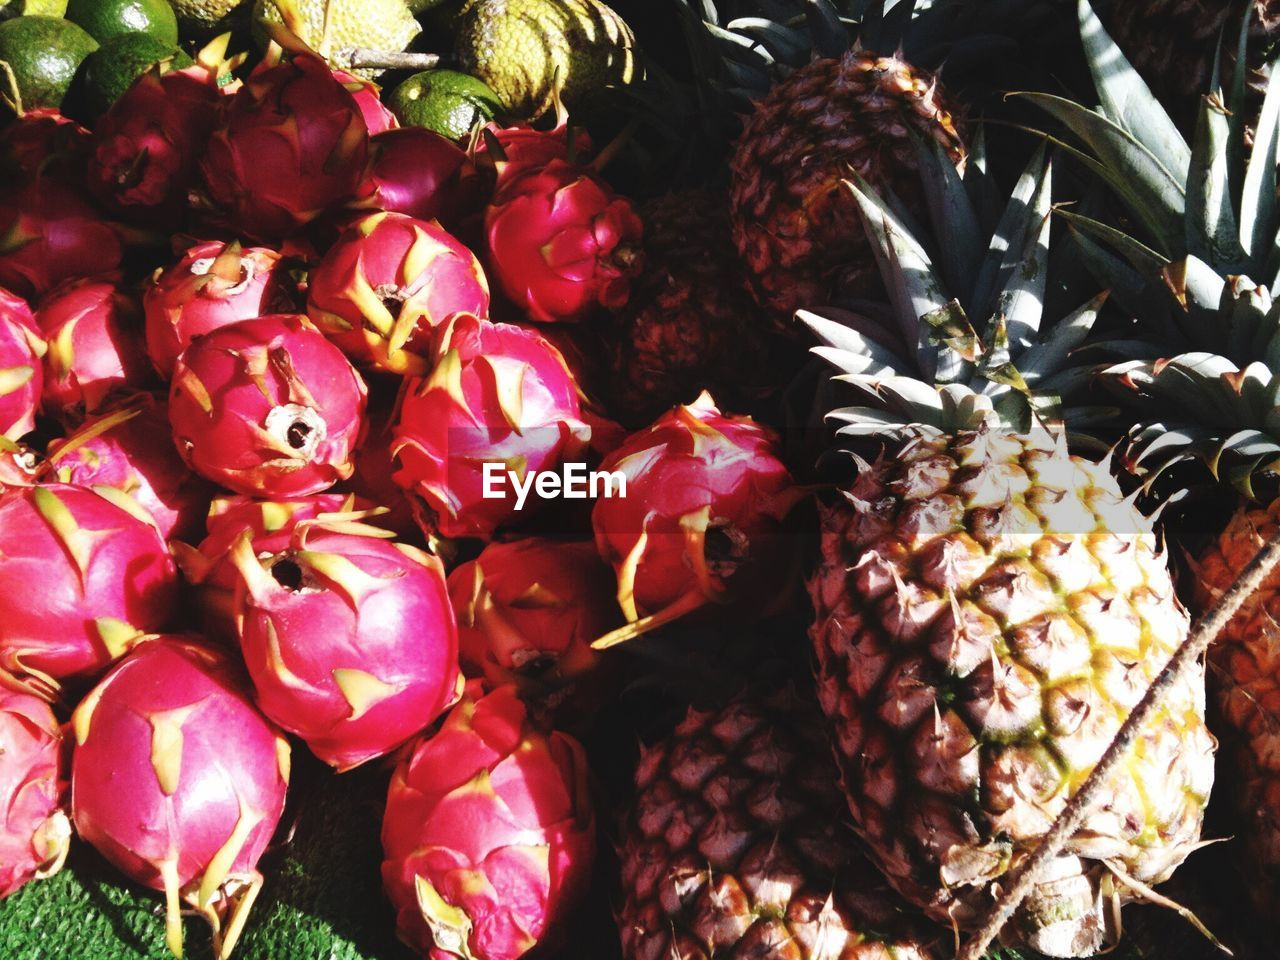 Pitayas And Pineapples For Sale At Market Stall